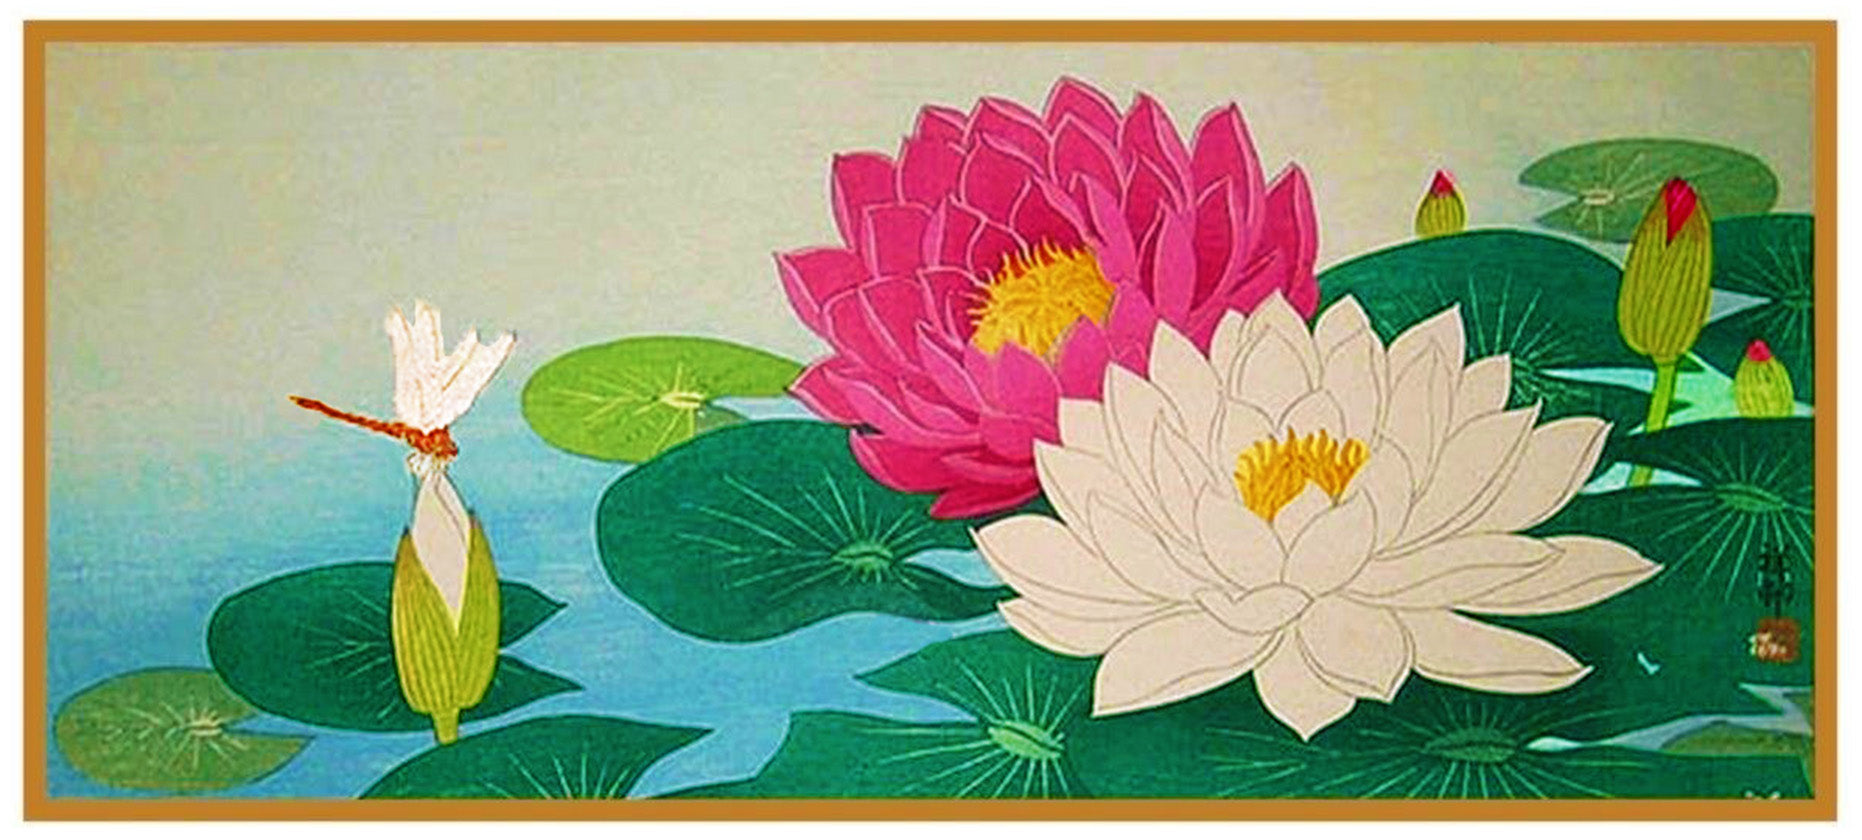 Japanese Artist Ohara Shoson S Lotus Flower And A Dragonfly